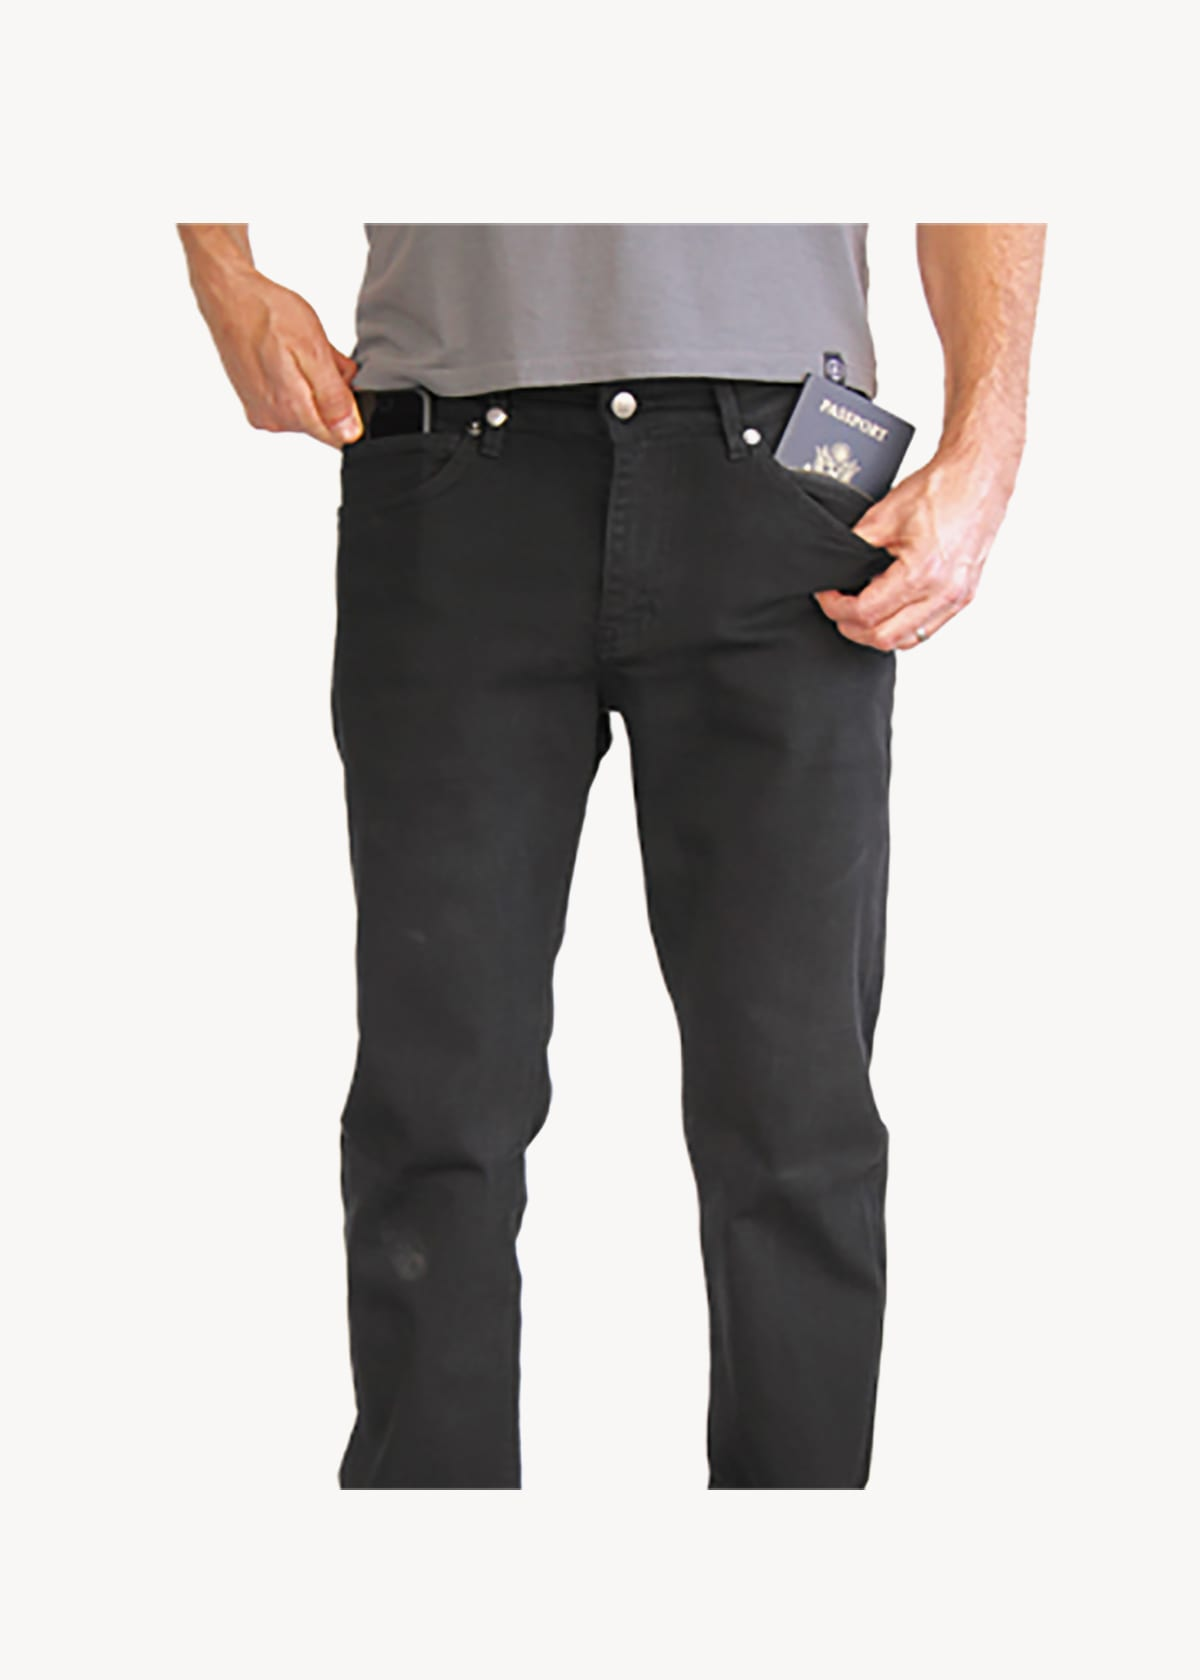 f0f244dcc613a Ultimate Buyer s Guide to Travel Jeans  Form Meets Function ...